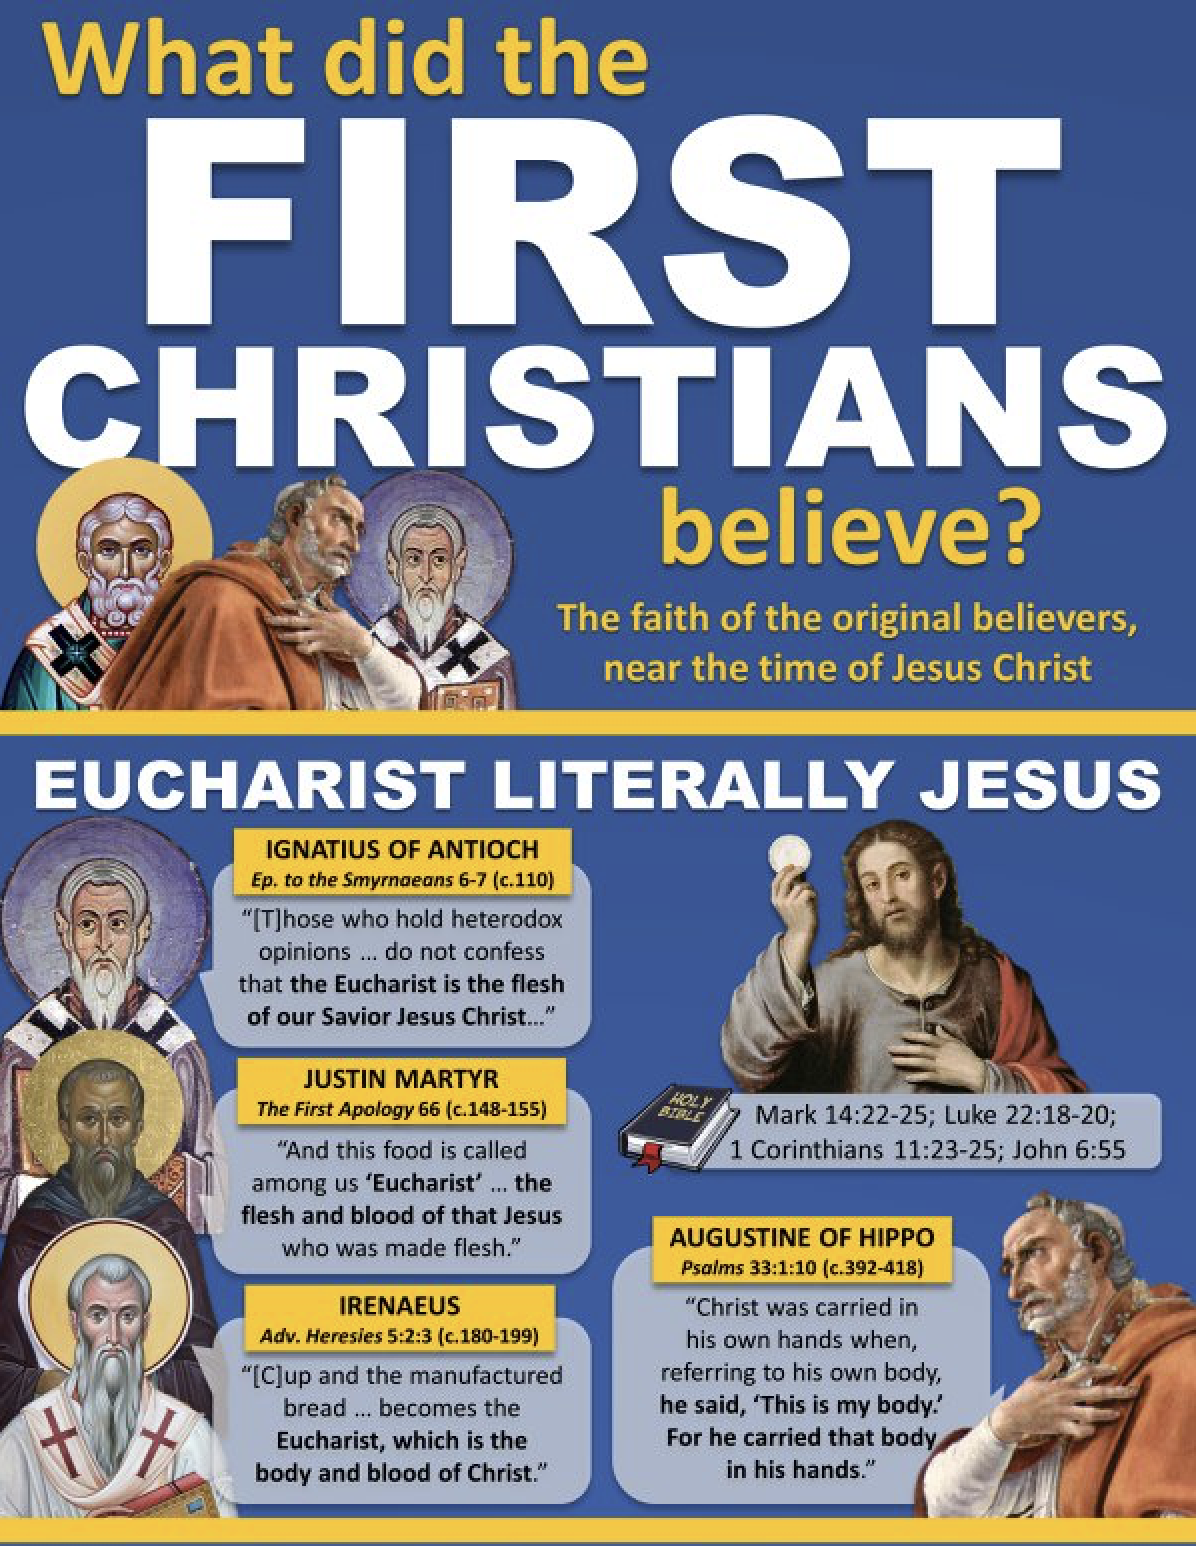 Eucharist what did the first Christians believe?